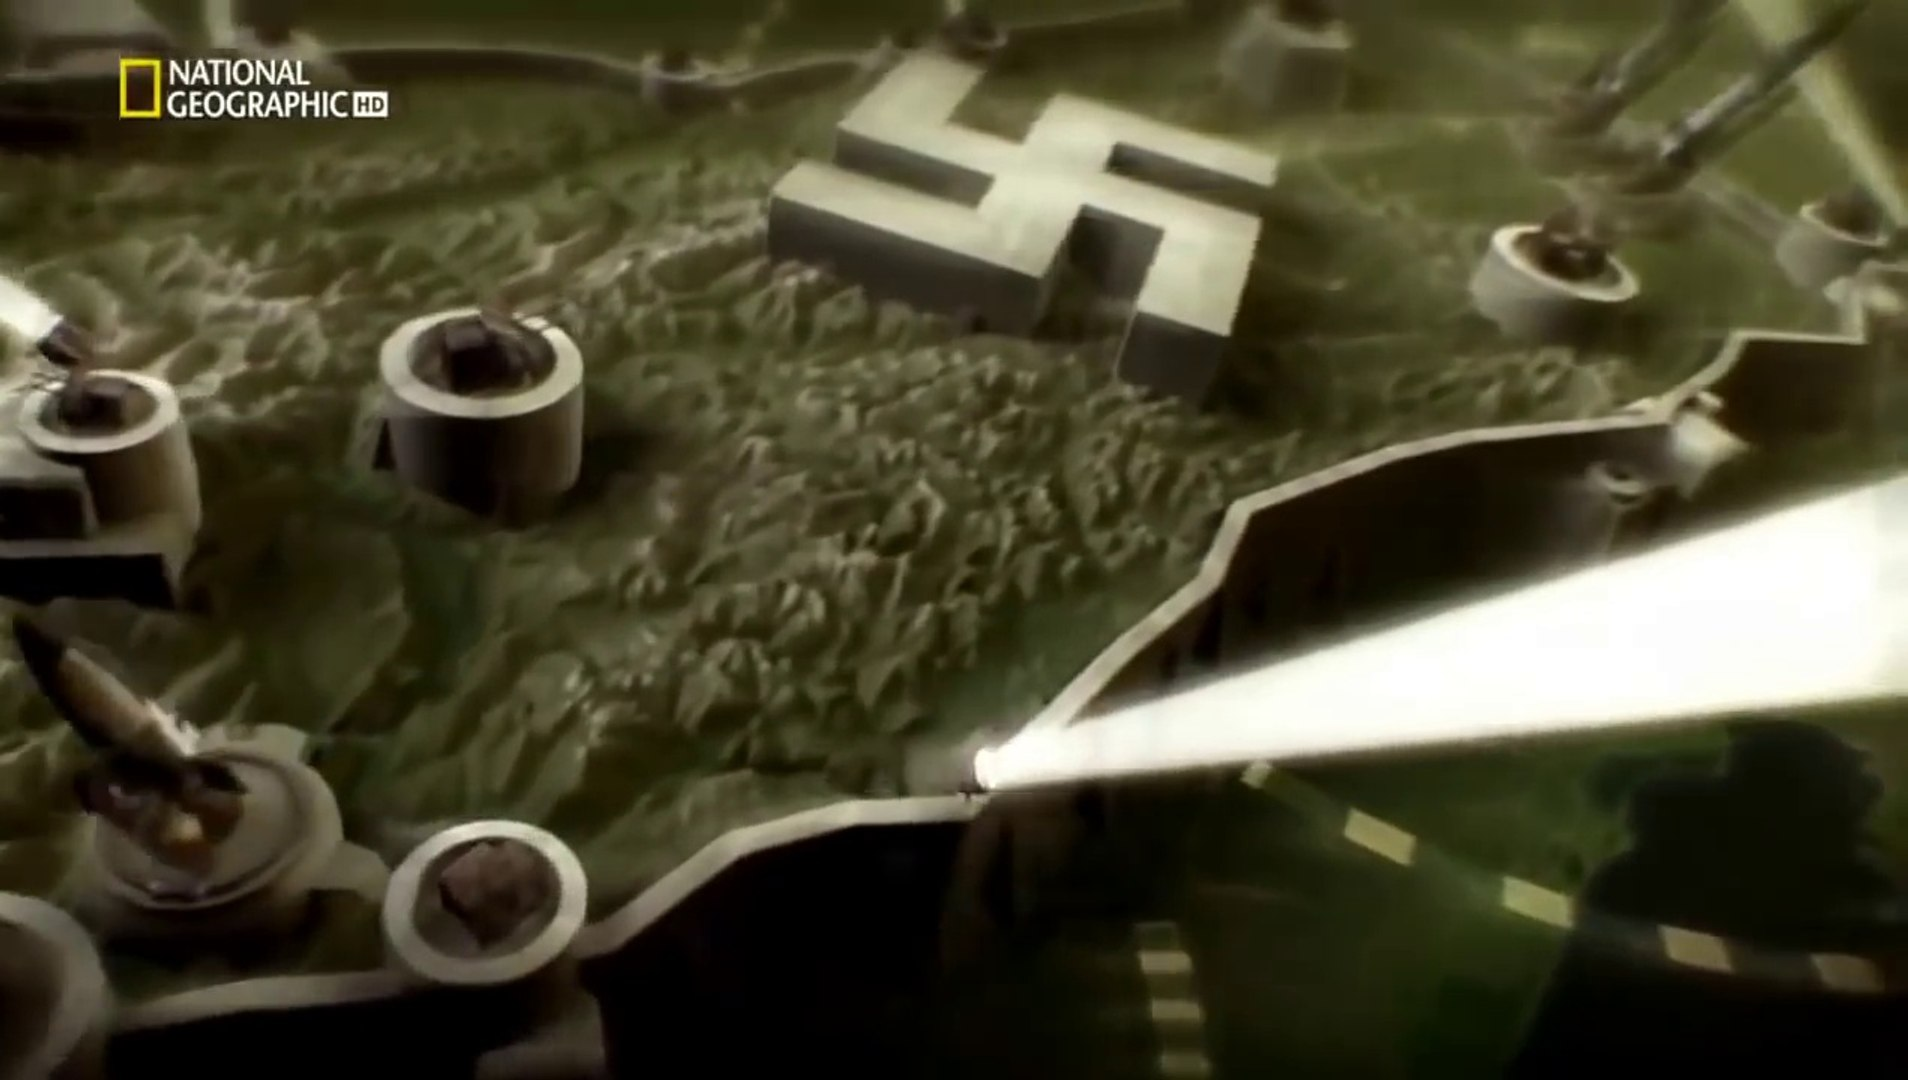 THE NAZI PARTY - NATIONAL GEOGRAPHIC DOCUMENTARY - Military History and War Documentaries (full docu